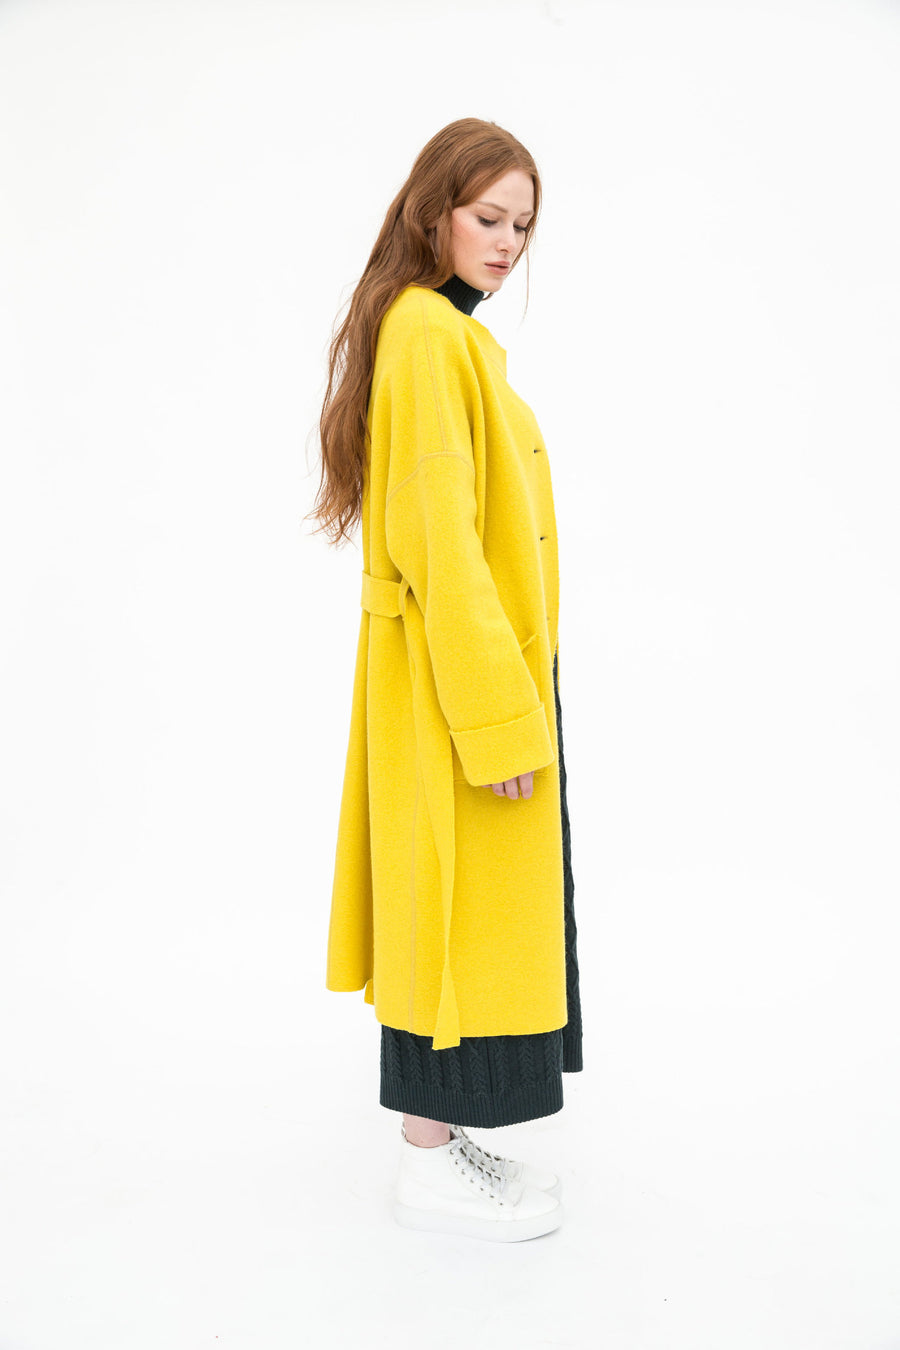 Ilyse Organic Wool Coat